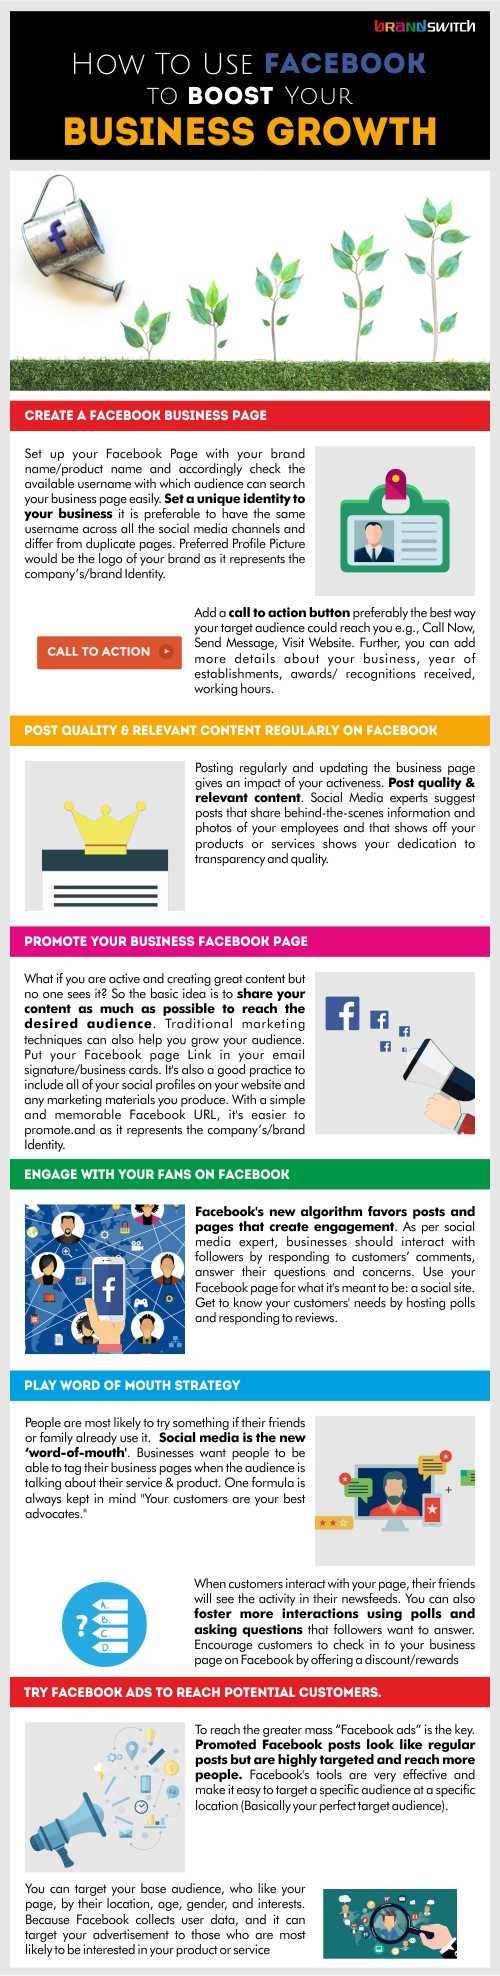 Facebook for business growth